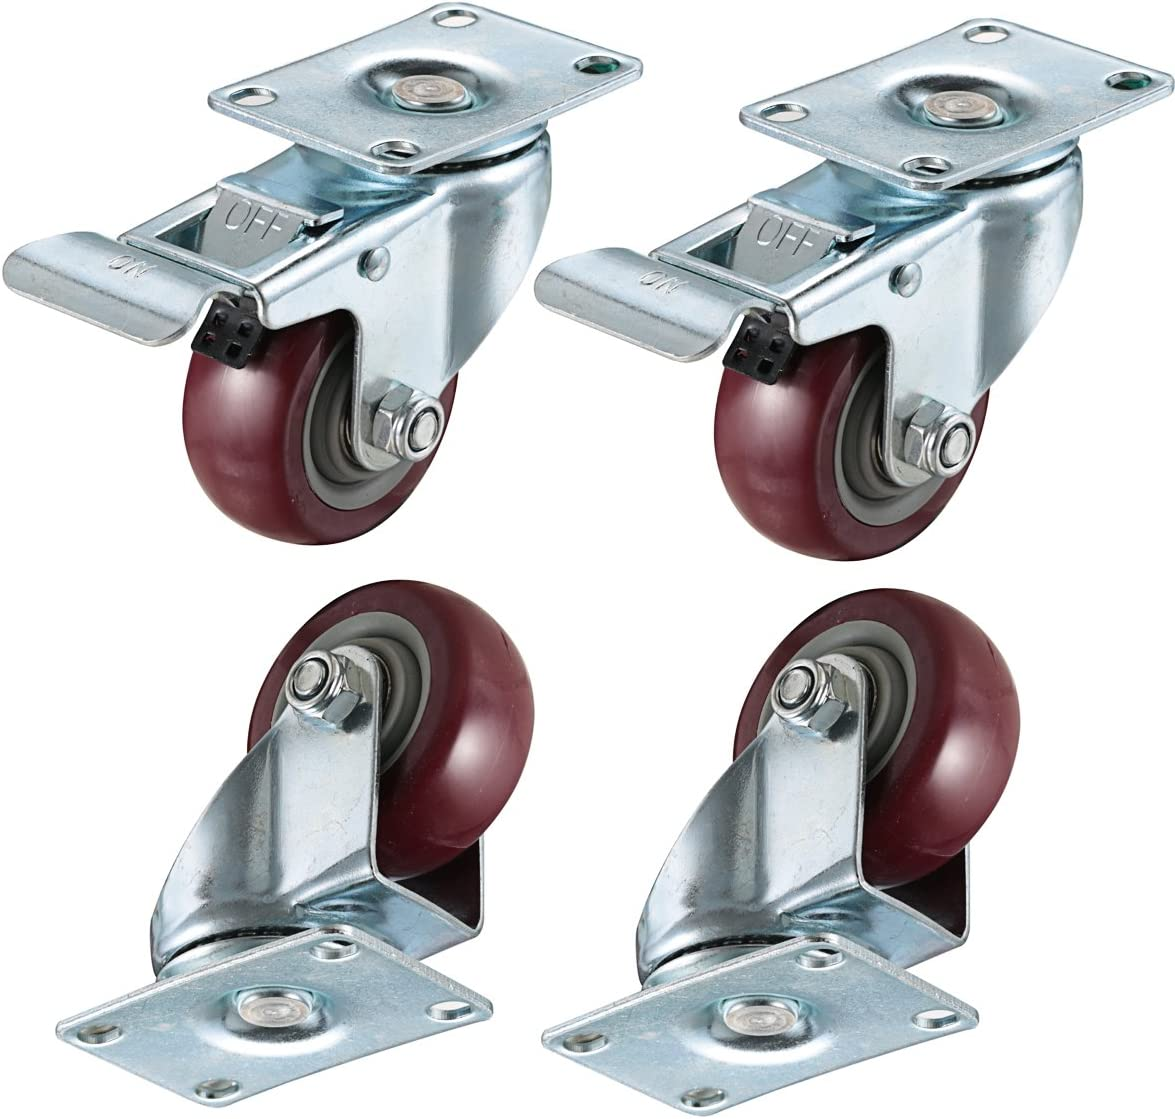 "bayite 4 Pack 3"" Heavy Duty Caster Wheels Polyurethane PU Swivel Casters with 360 Degree Top Plate 500lb Total Capacity for Set of 4 (2 with Brakes& 2 Without) Red"